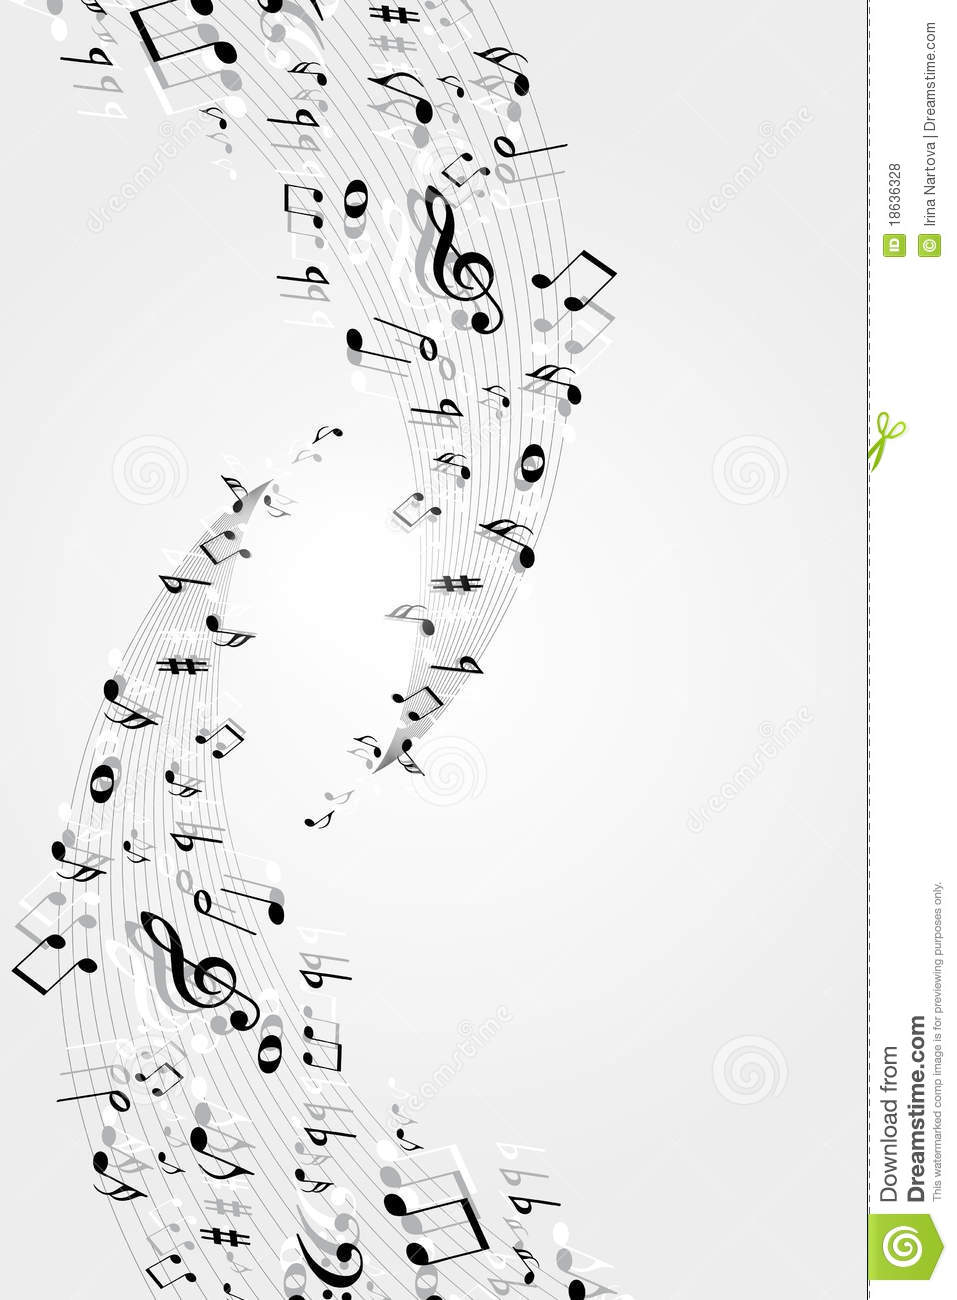 Image Result For Royalty Free Music Free Download Background Music